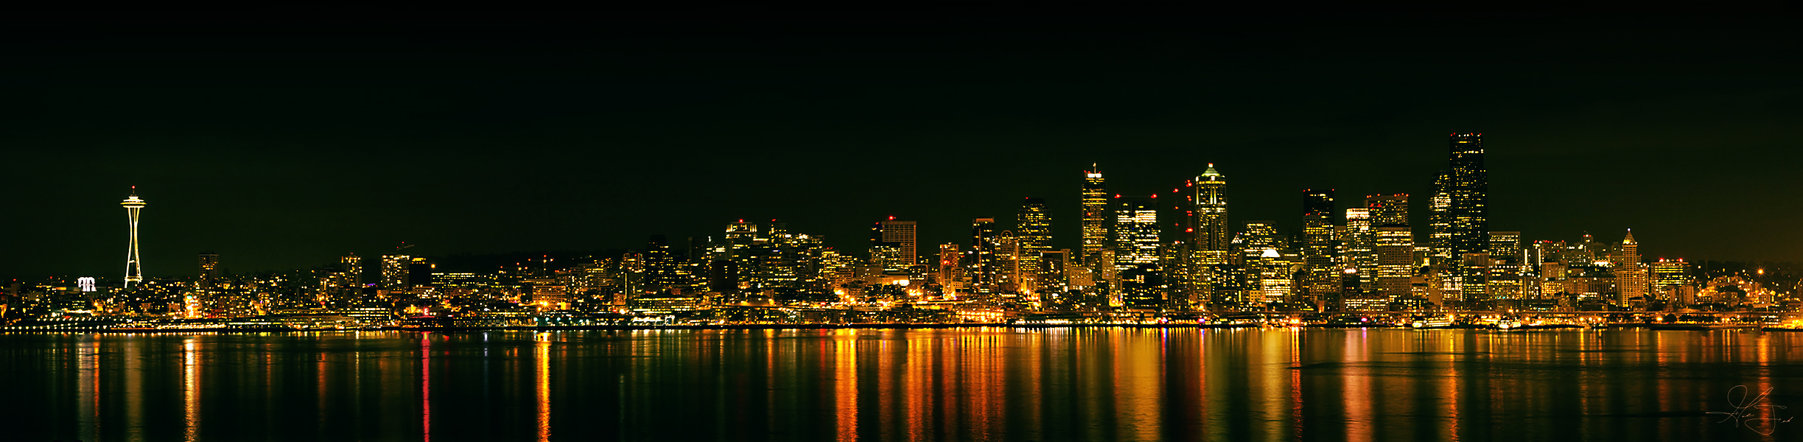 Night Seattle Skyline Wallpaper Pictures 1803x442